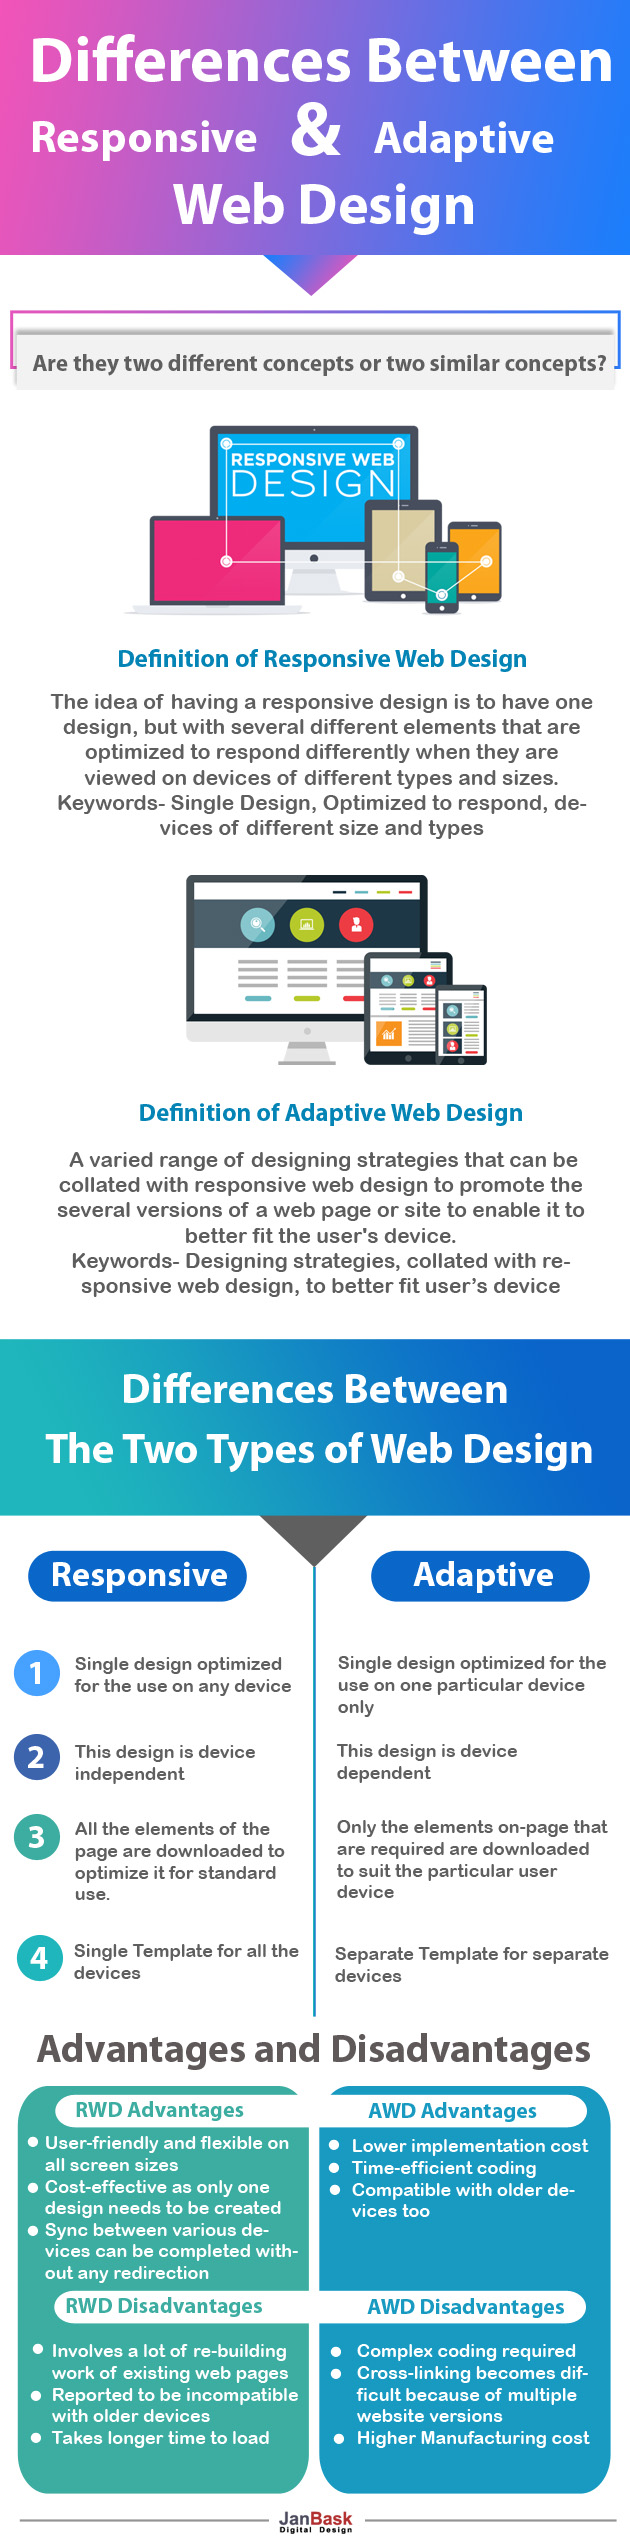 Infographic Differences Between Responsive And Adaptive Web Design